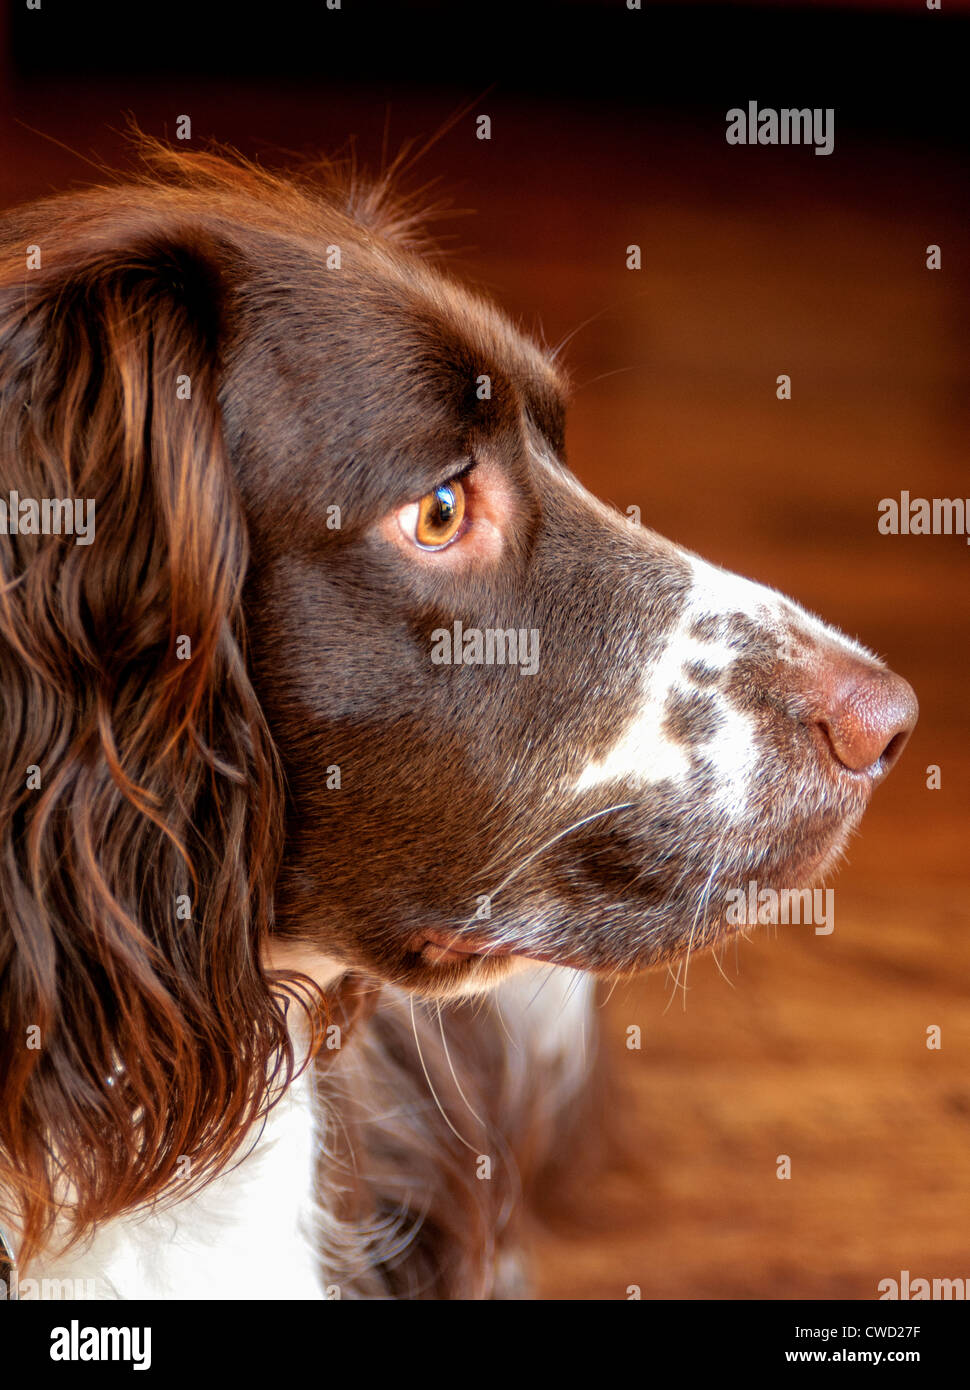 An English Springer Spaniel, liver and white in colour looking sideways in a portrait - Stock Image